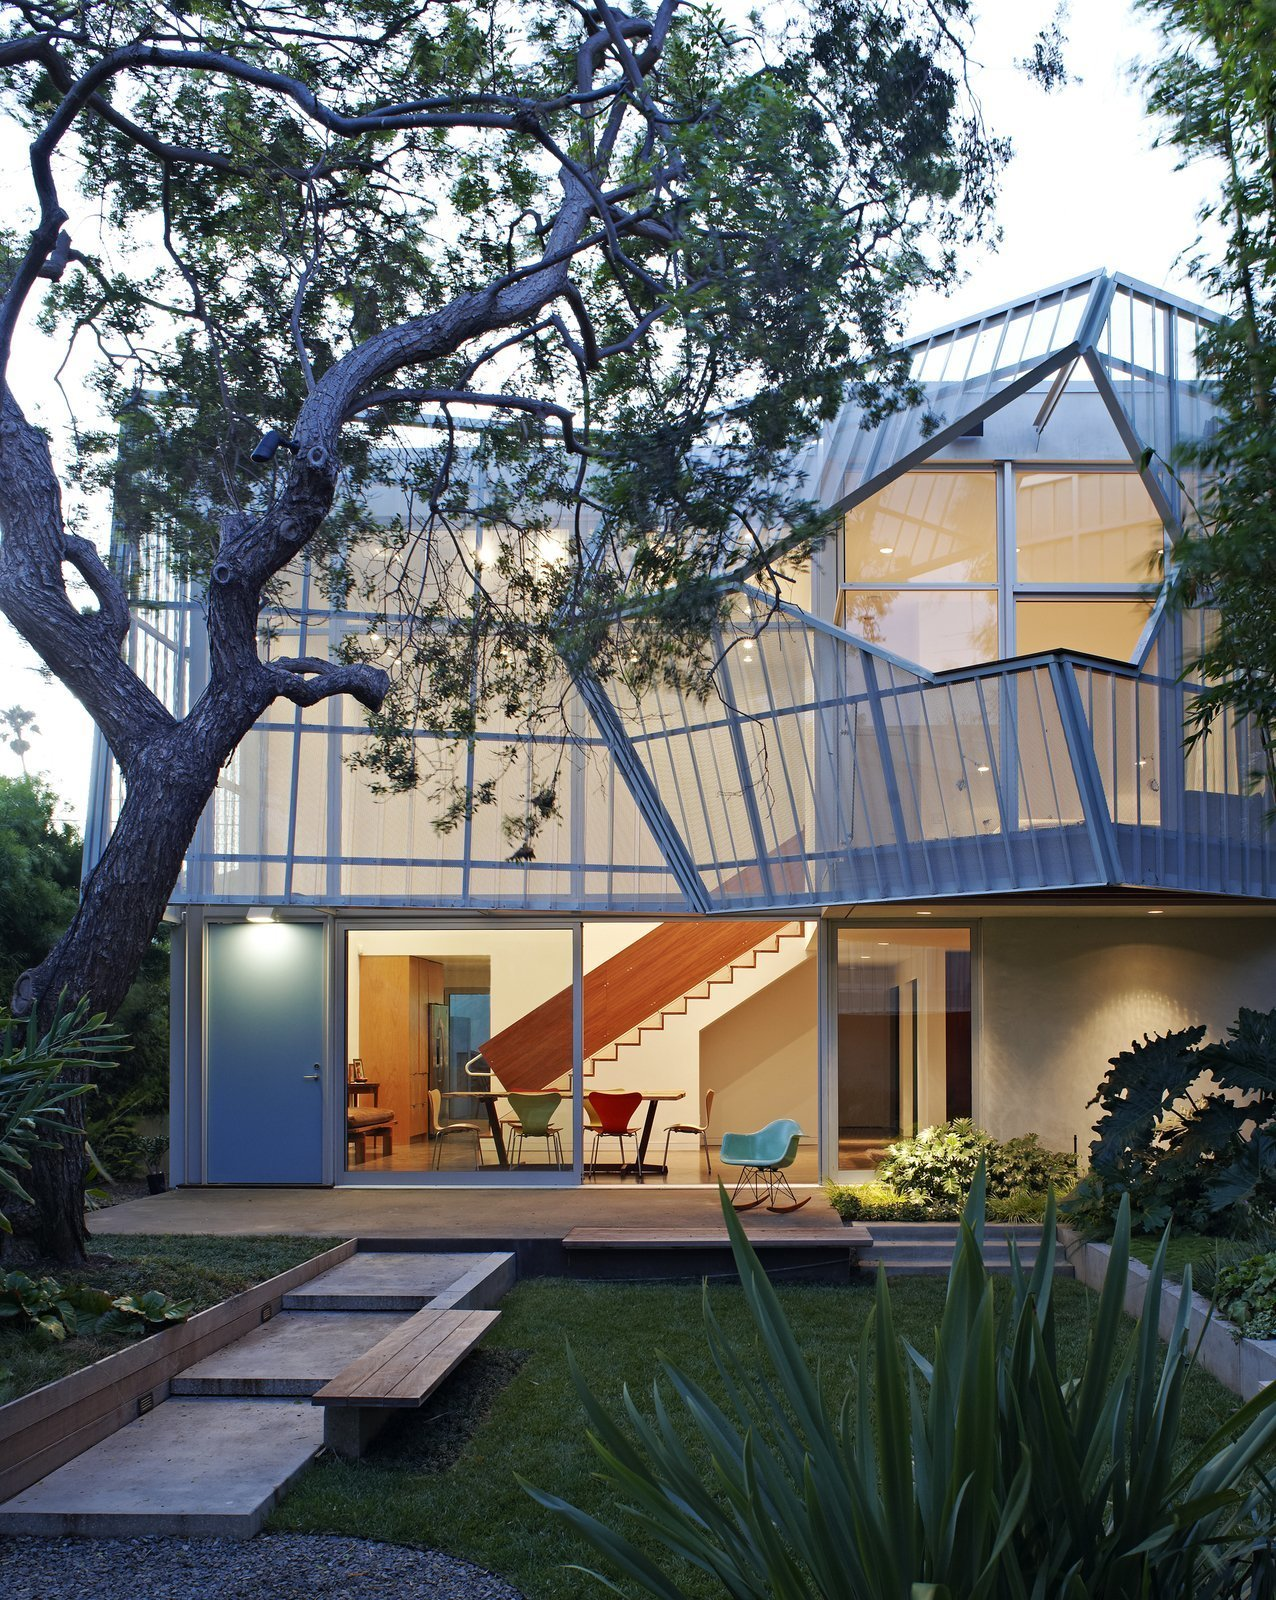 Kevin Daly Architects created a geometric perforated, folding metal skin supported by an aluminum exoskeleton, which shades the two-story glazed courtyard-facing façade of this home in Venice, California.